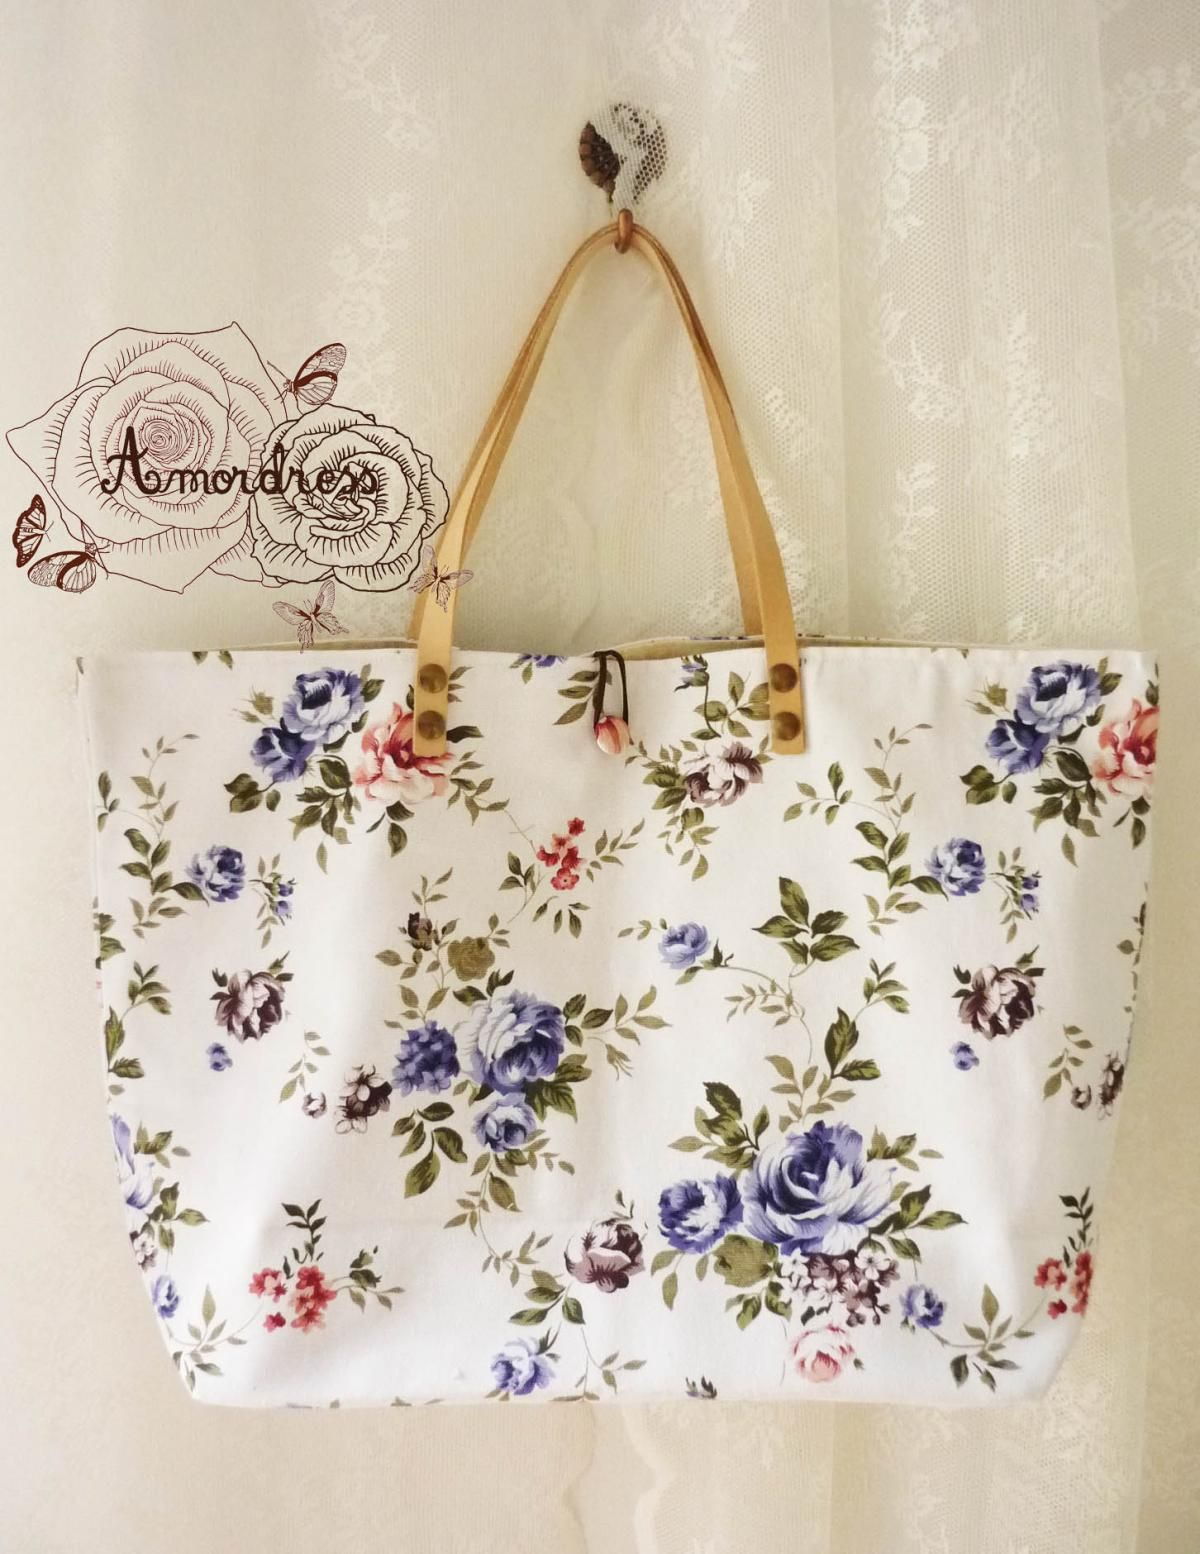 Floral Tote Bag Printed Canvas Bag | Bags, Shabby chic and Canvases